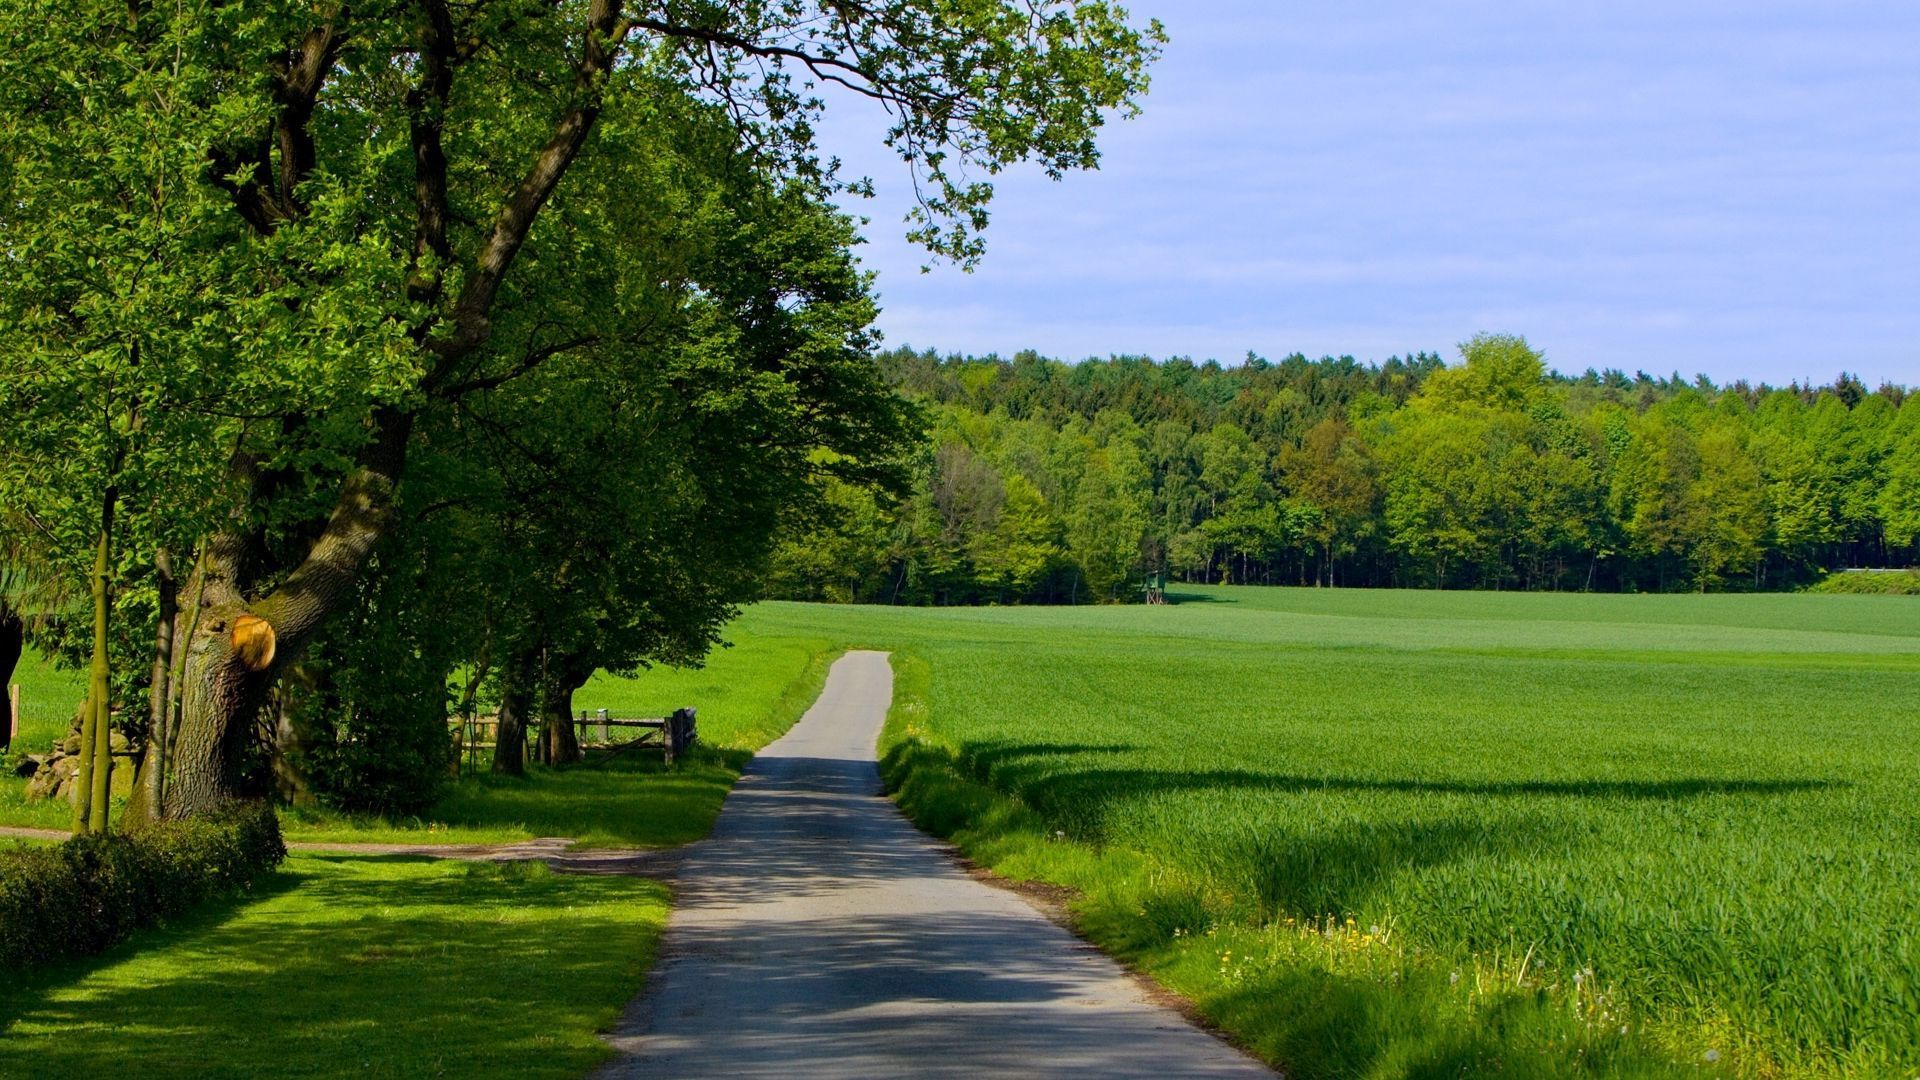 Countryside road on a summer day desktop wallpaper 29485 1920x1080